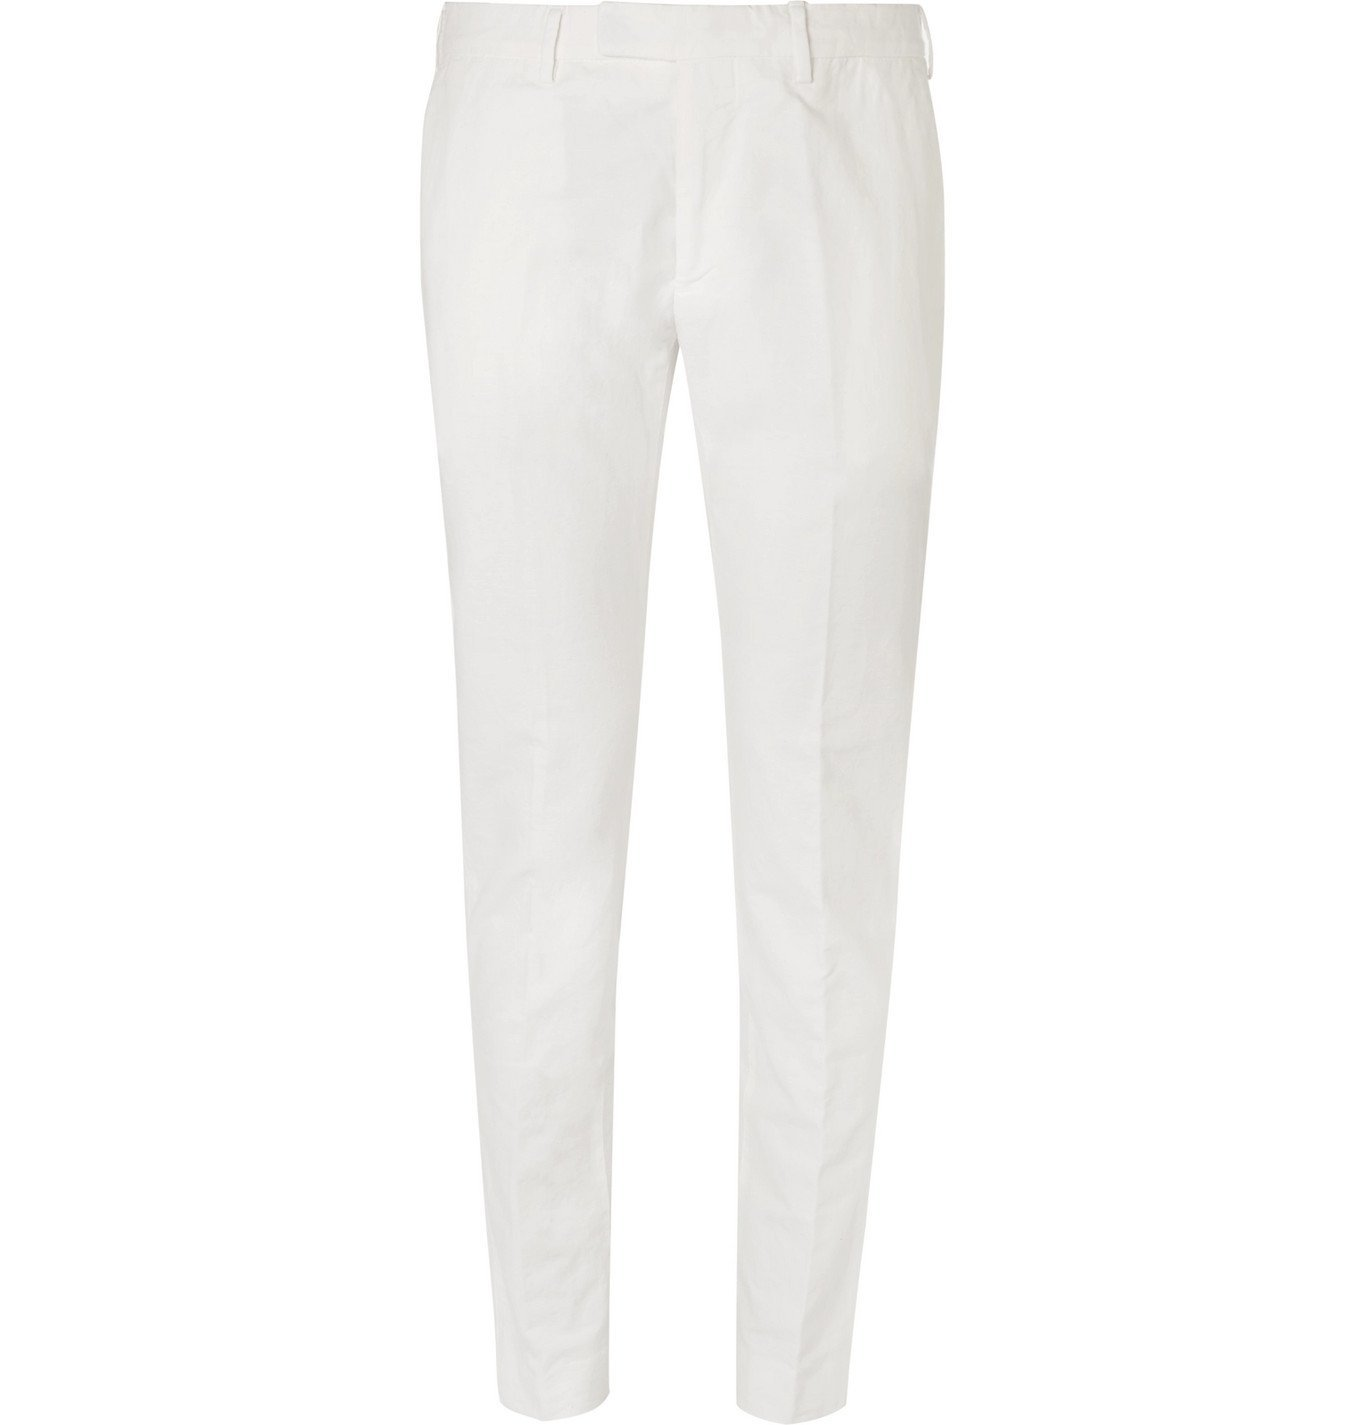 Photo: SALLE PRIVÉE - Gehry Cotton and Linen-Blend Chinos - White